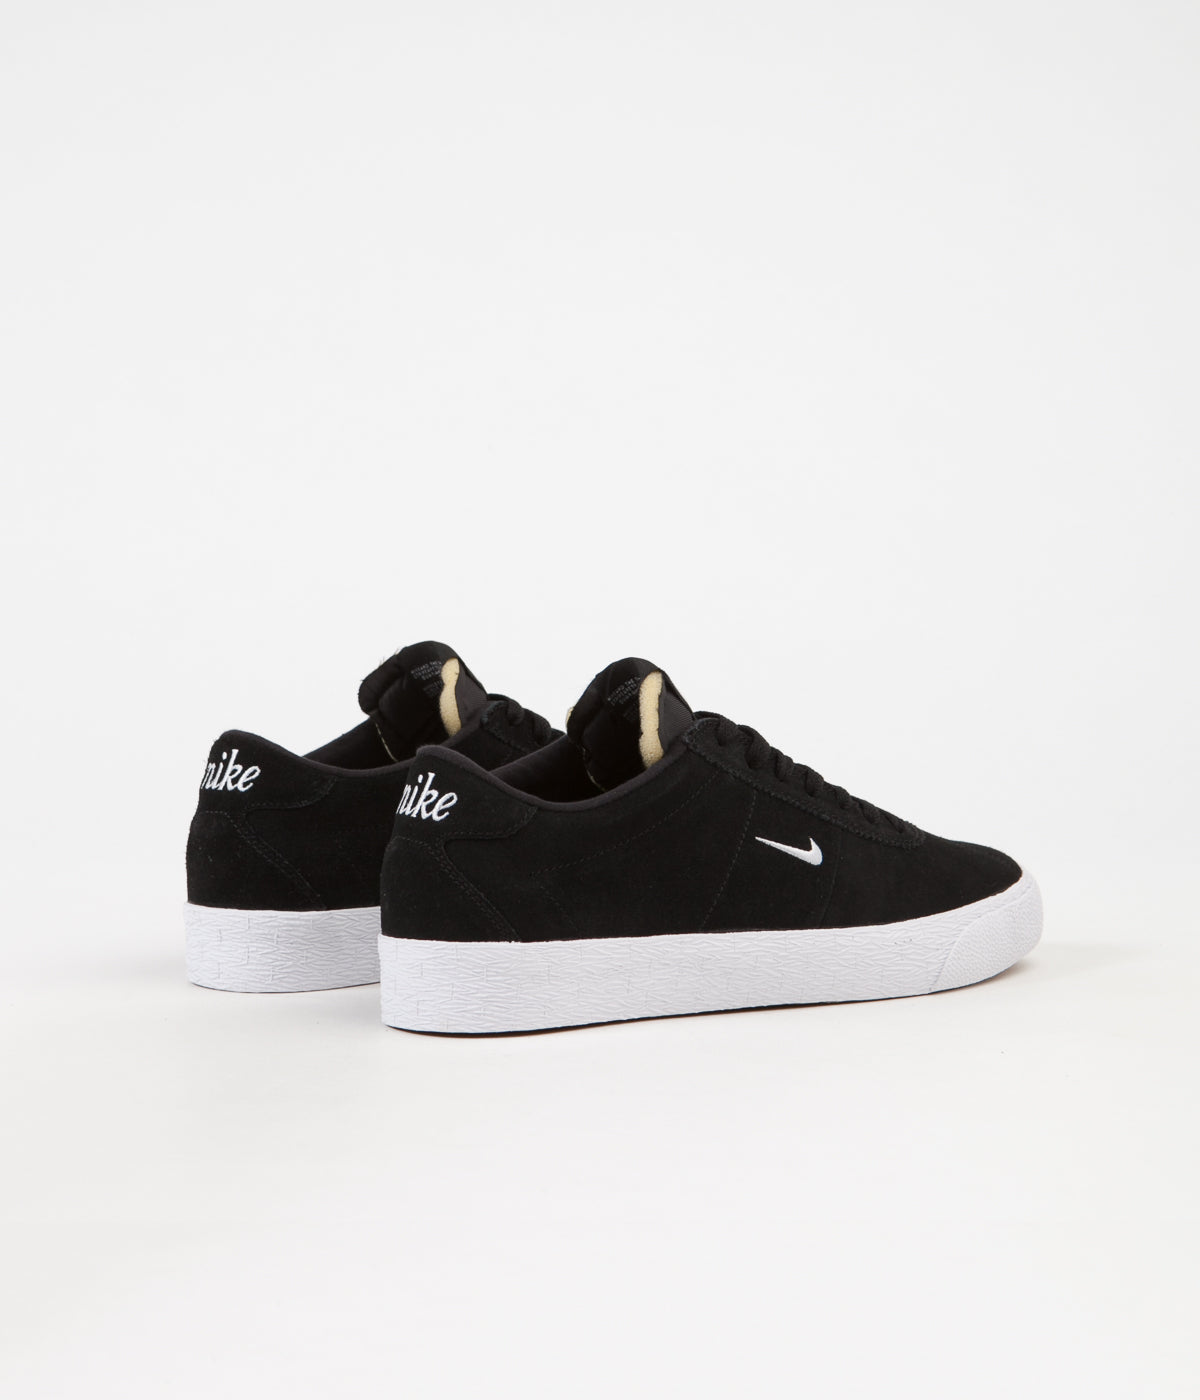 revendeur 6c17b 18bee Nike SB Bruin Ultra Shoes - Black / White - Gum Light Brown ...